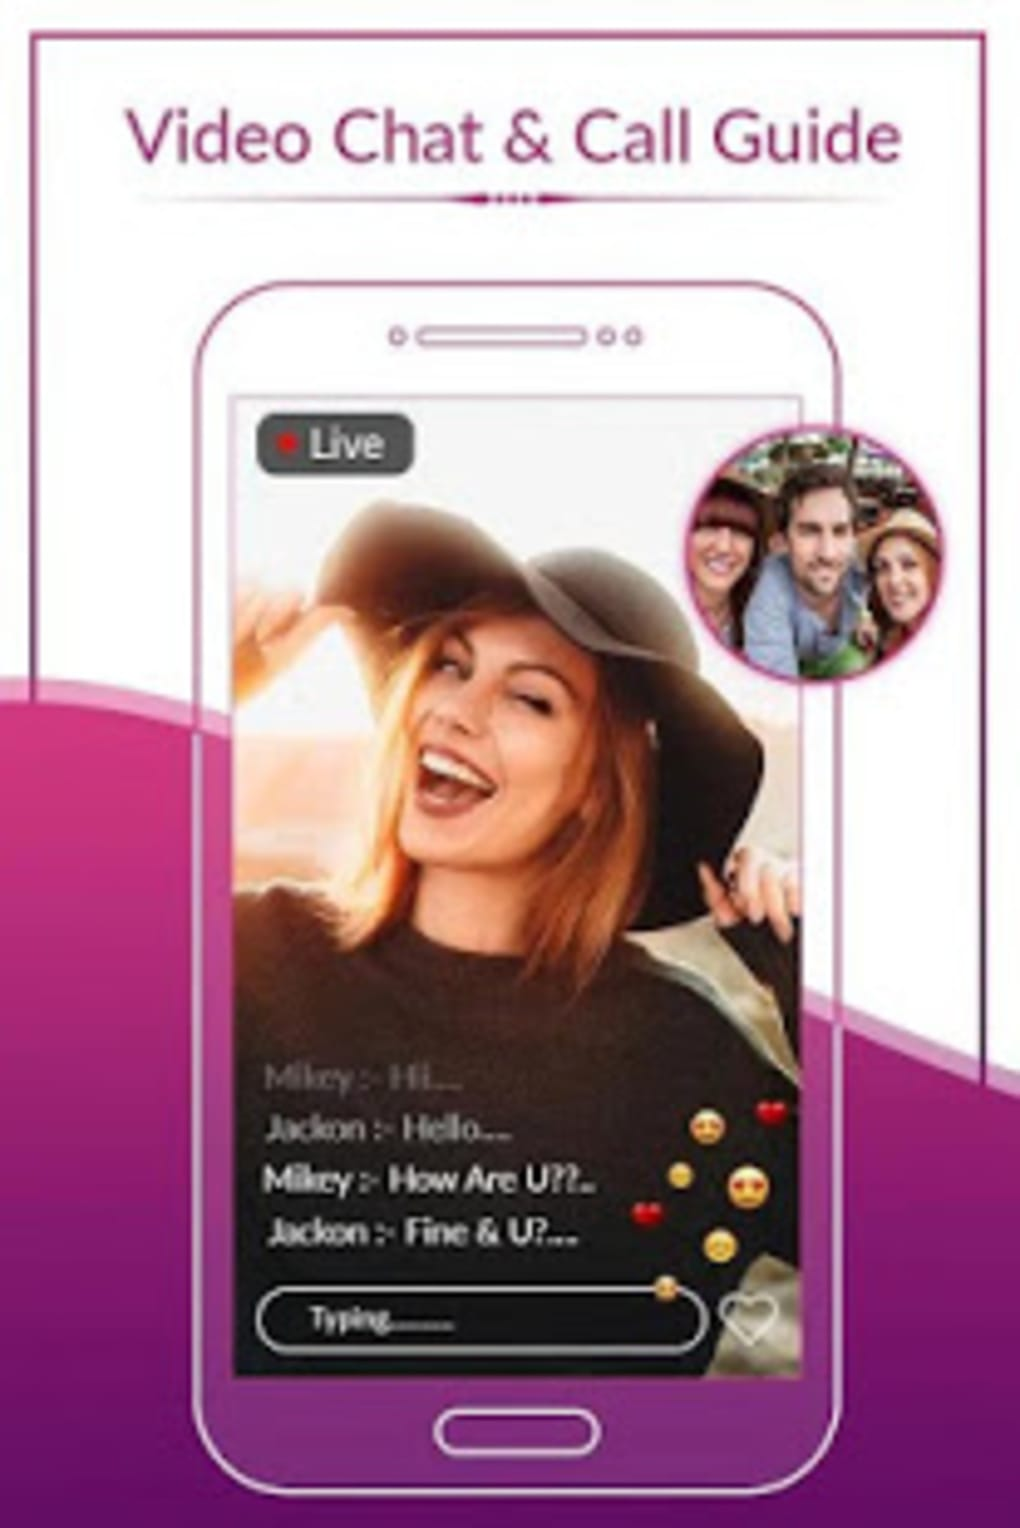 Live Video Call - Chat Video Call advice for Android - Download